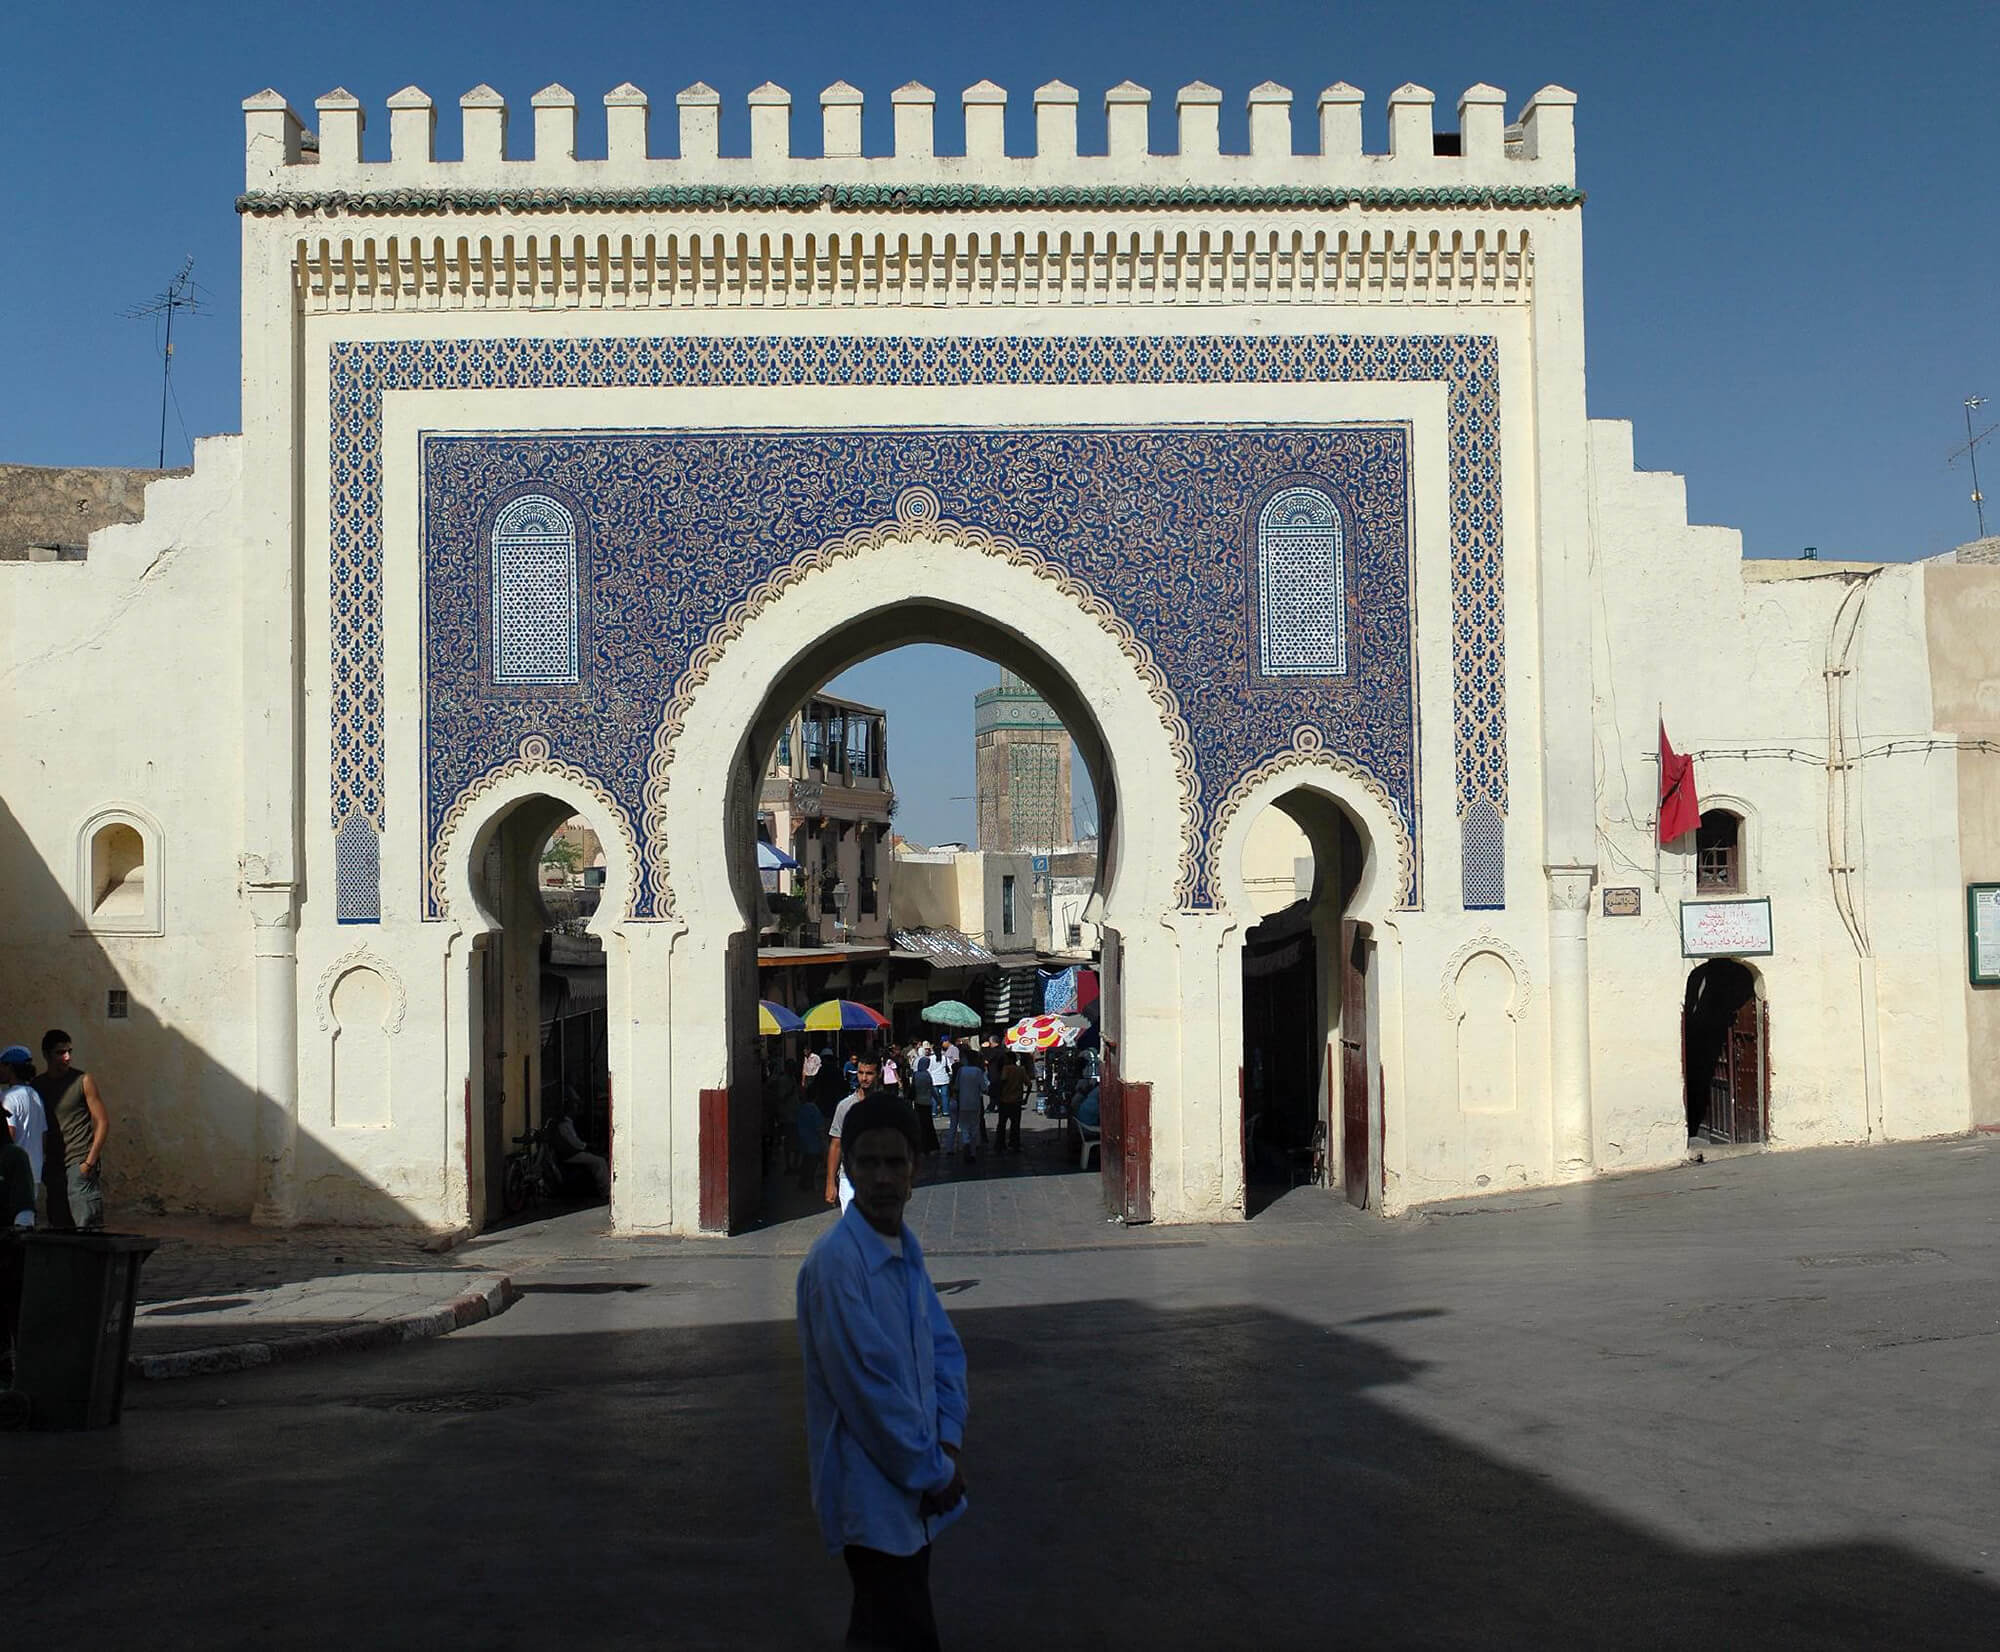 Sahara Desert Tour - What To Do and See in Fez - Bab Bou Jeloud Blue Gate